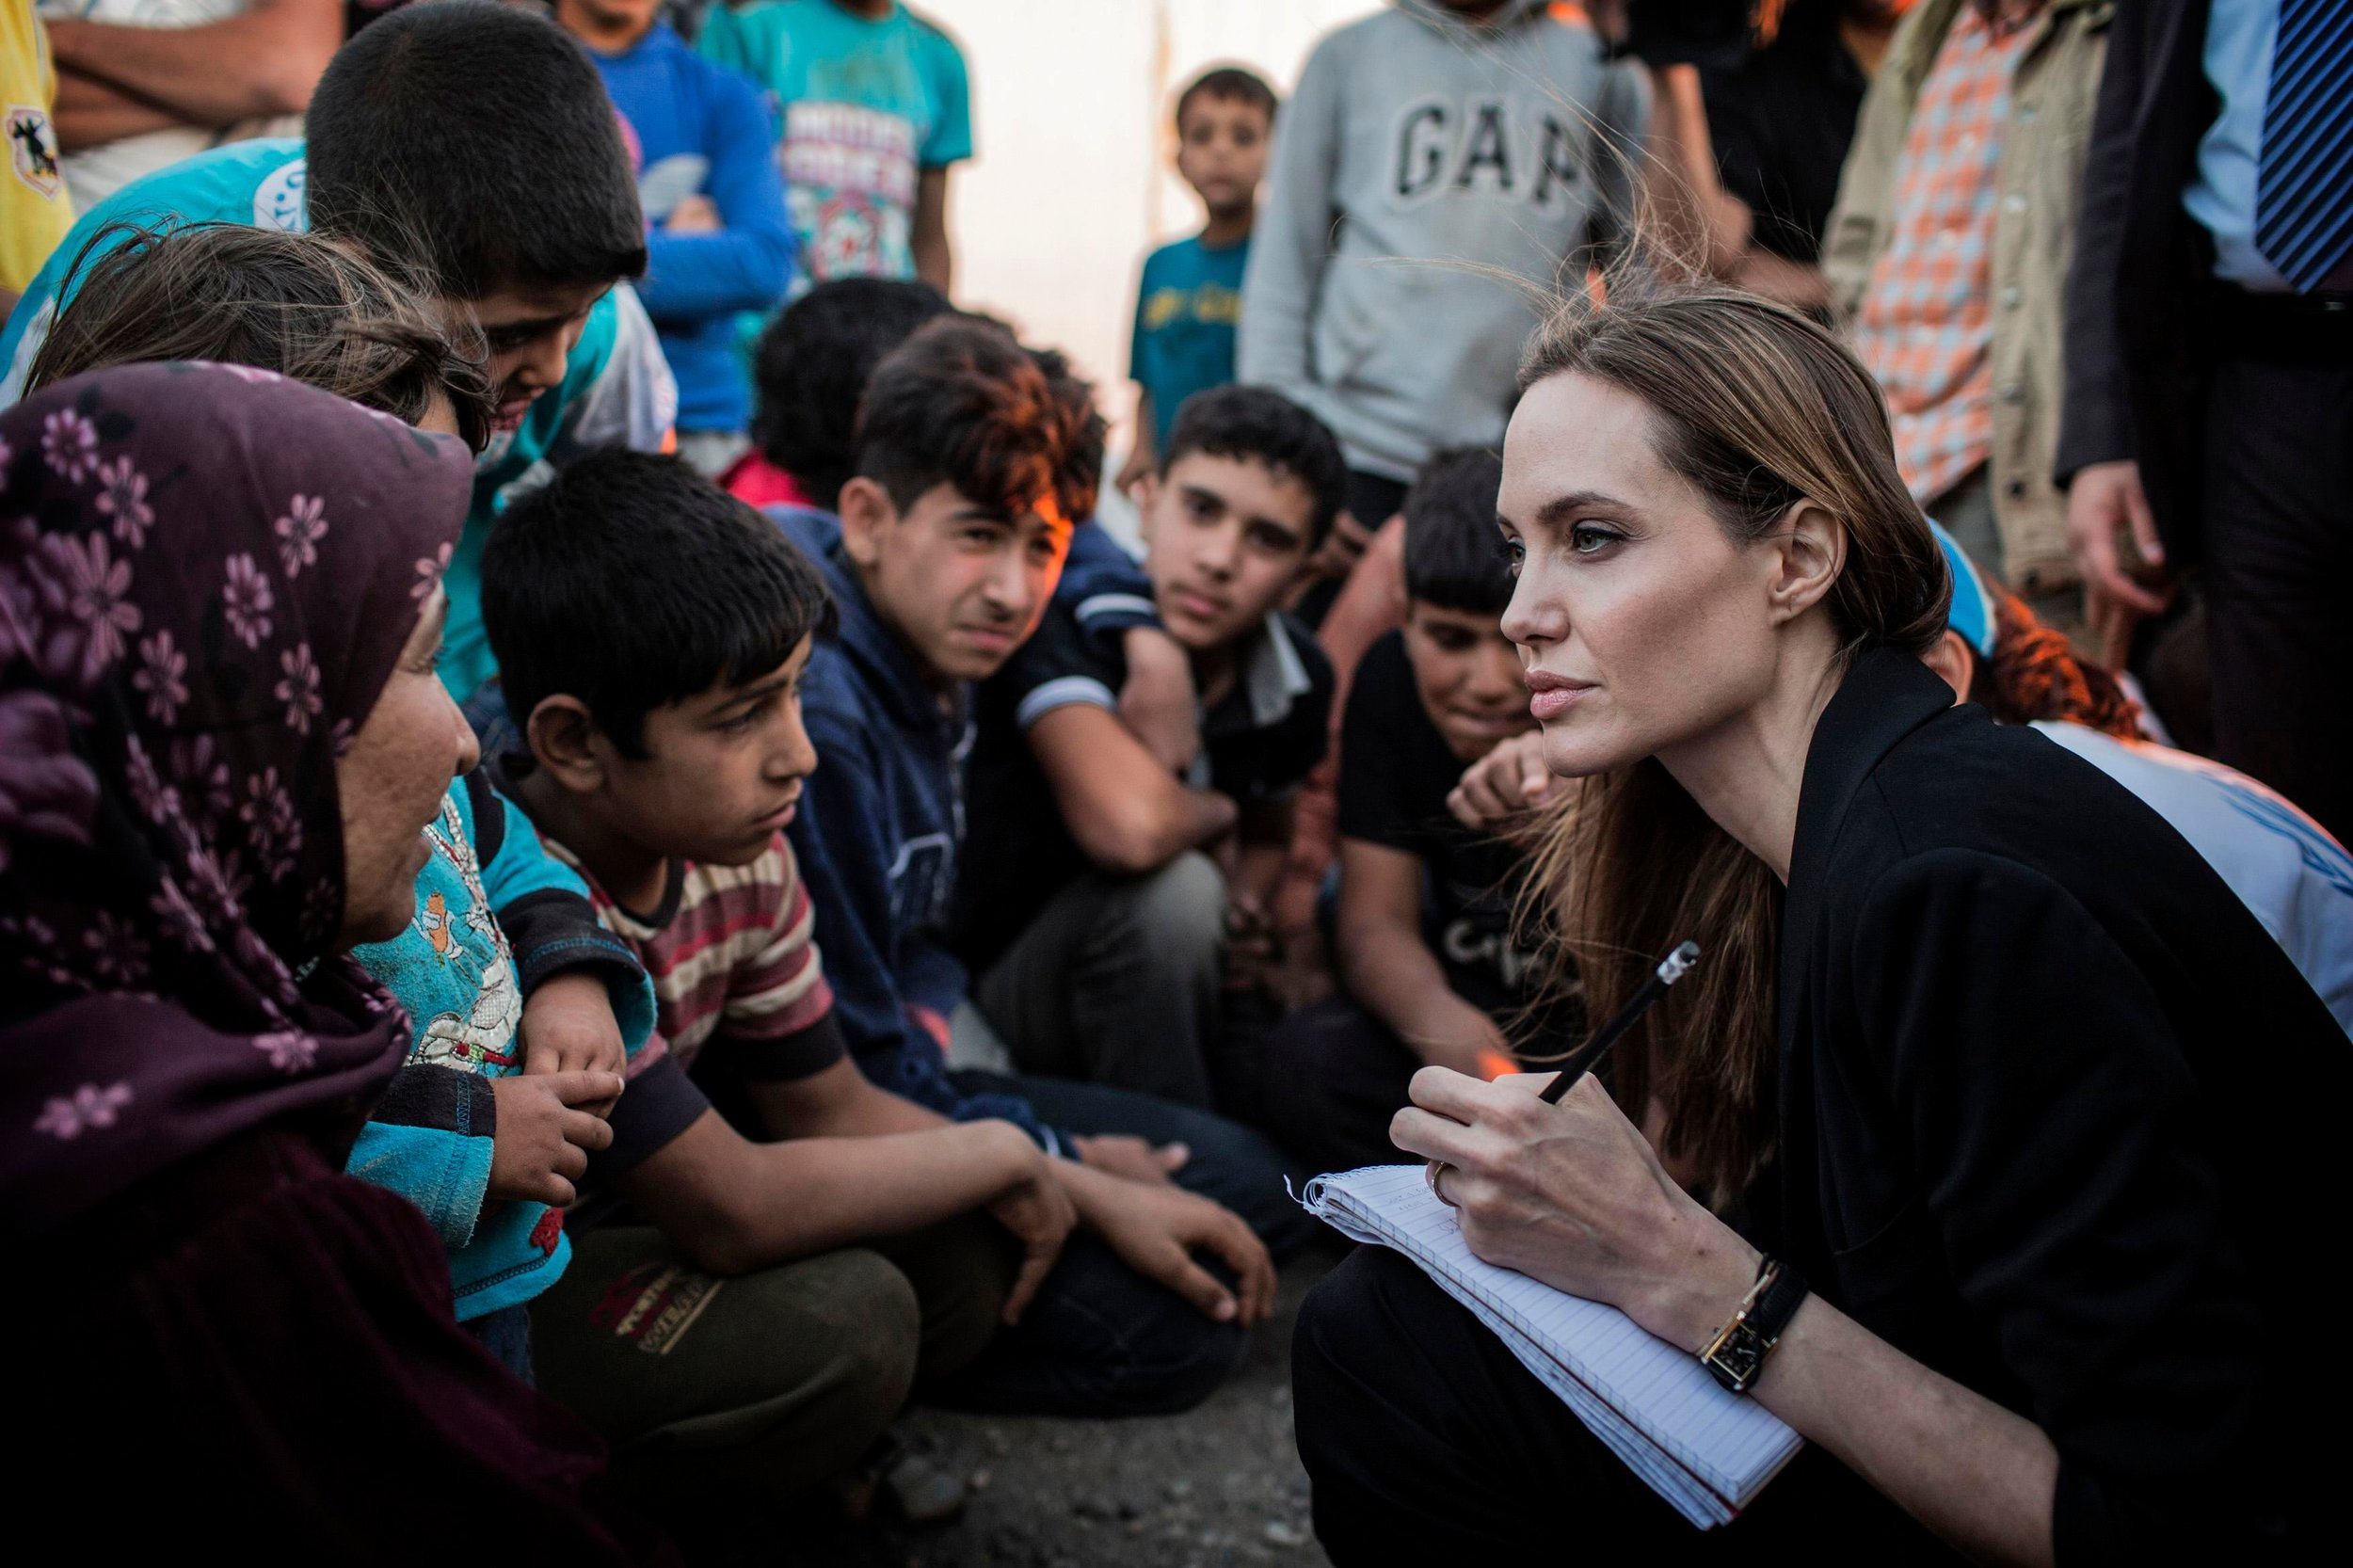 Angelina Jolie taking notes in a Syrian refugee camp in Jordan, February 2017.